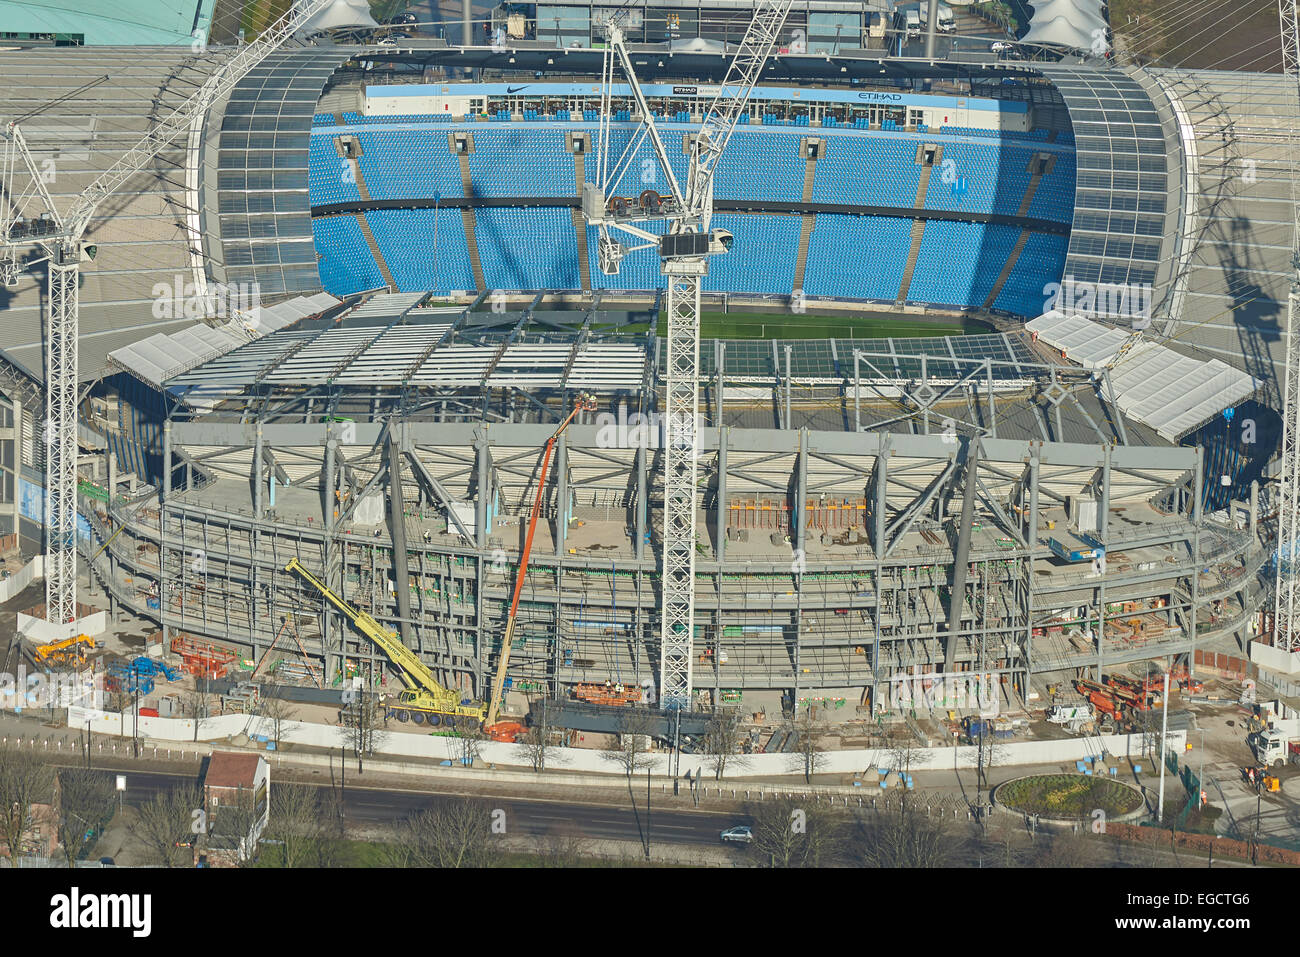 Aerial photograph of the Etihad Stadium, Manchester City Football Club - Stock Image